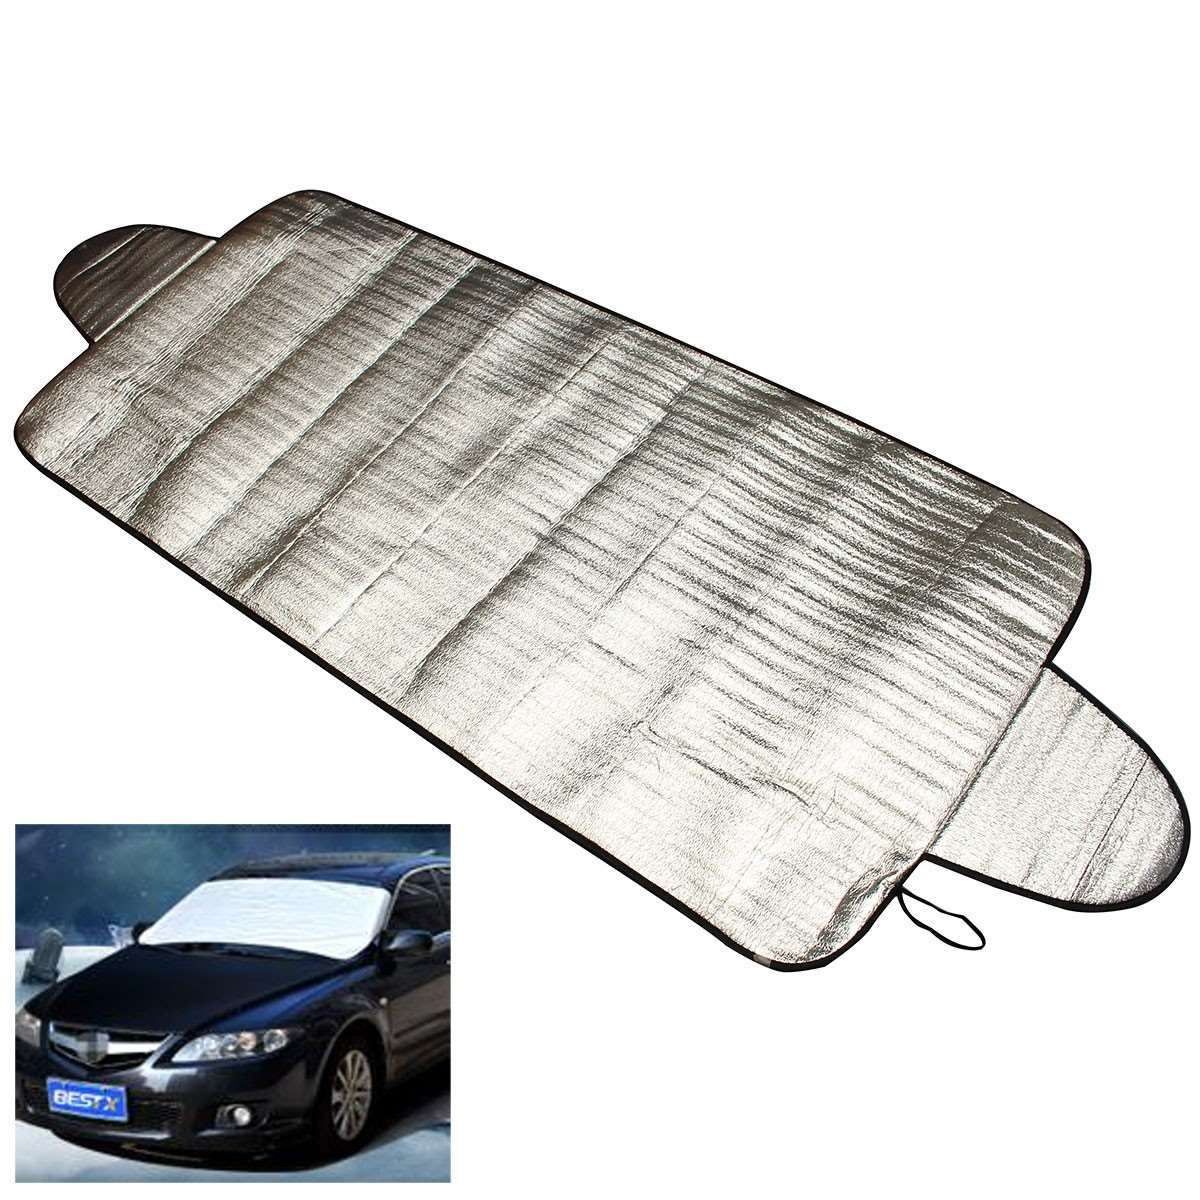 Car Windshield Cover Anti-shade Frost Ice Snow Protecting UV Fading Car Cover